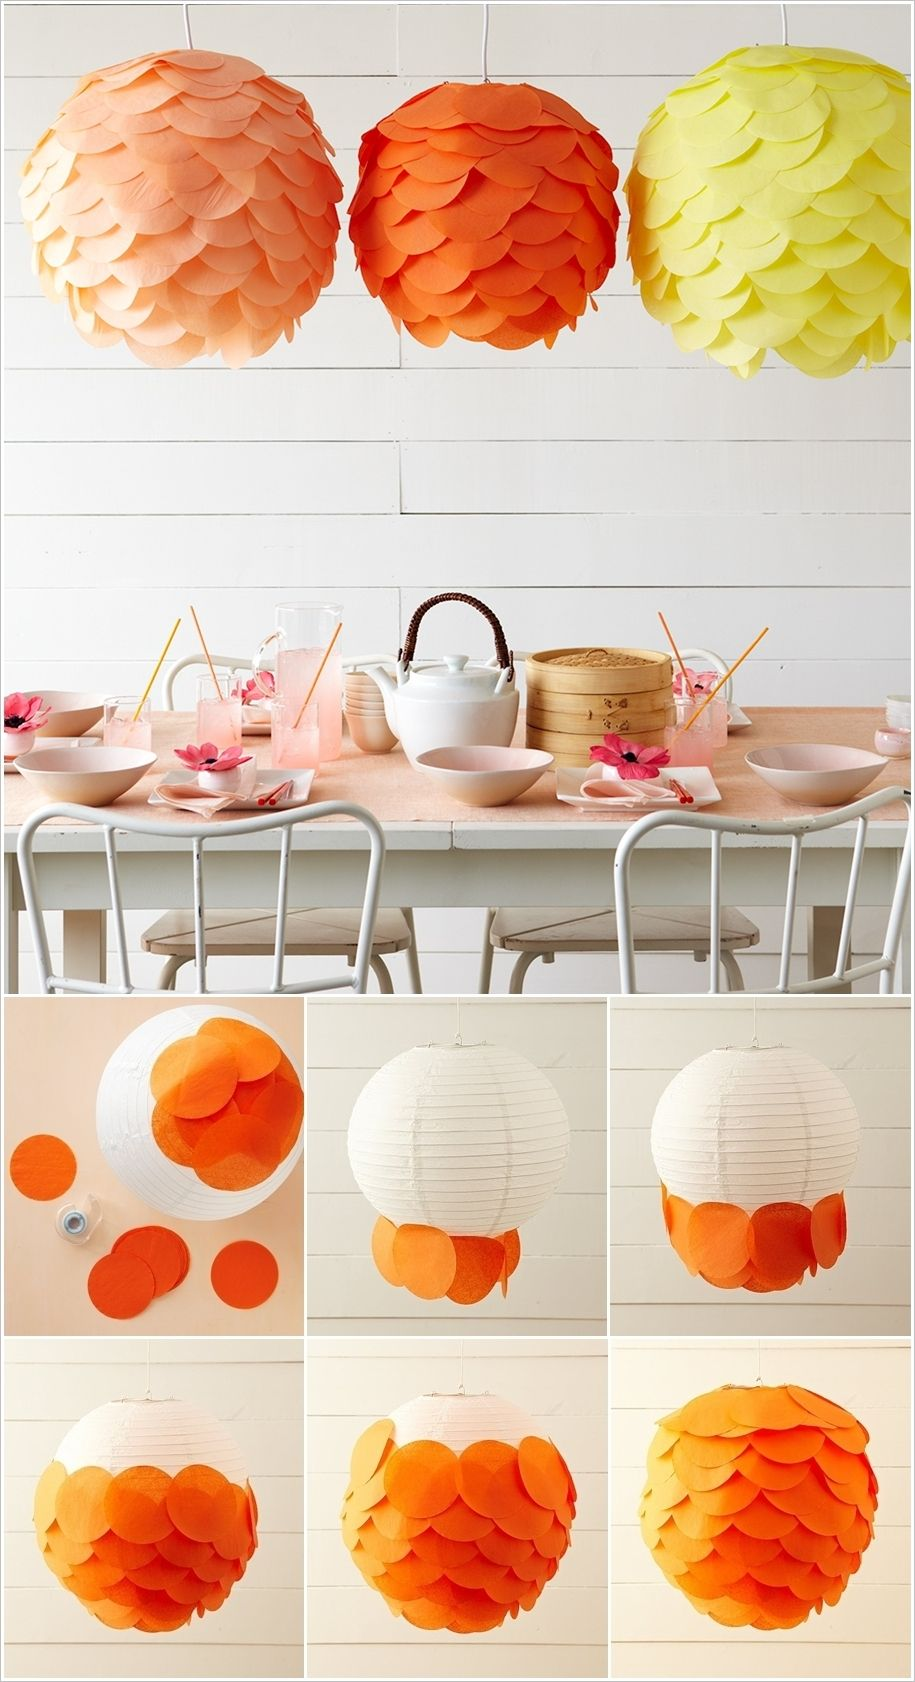 18 Amazing DIY Paper Lanterns and Lamps | Diy paper lanterns, Diy ... for Diy Paper Lamp Ideas  166kxo